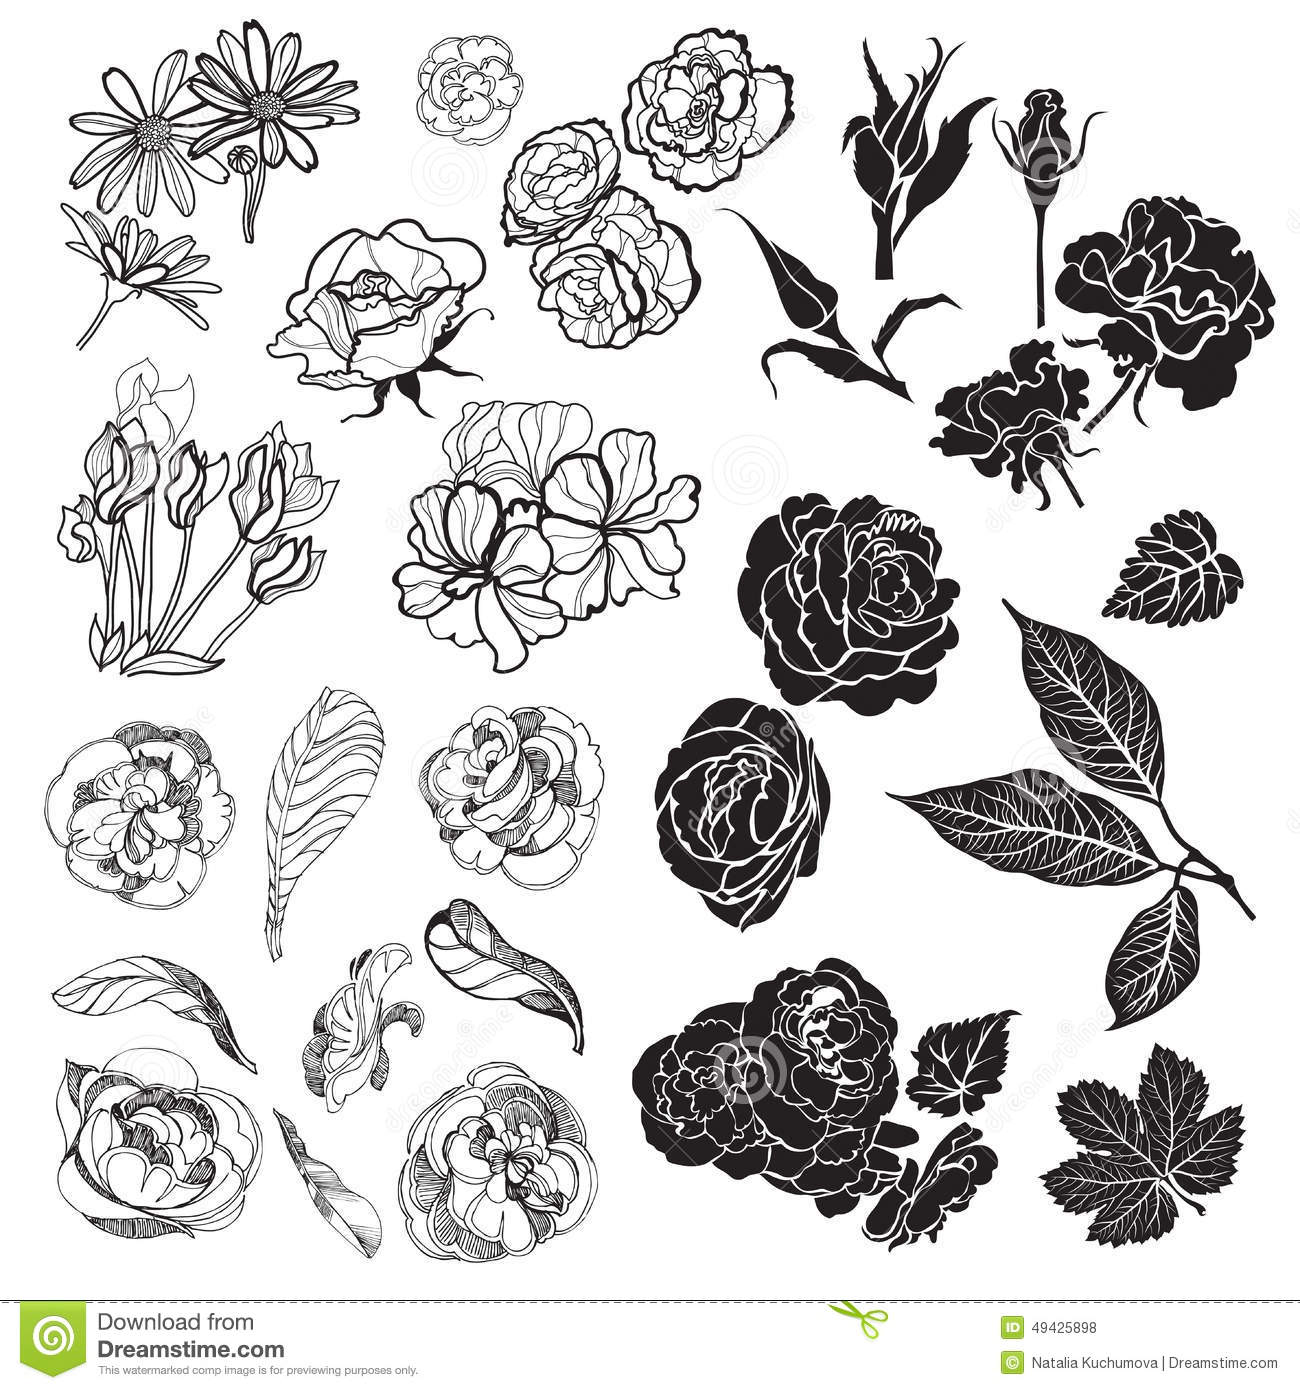 Sketches of flowers stock illustration illustration of beautiful sketches of flowers izmirmasajfo